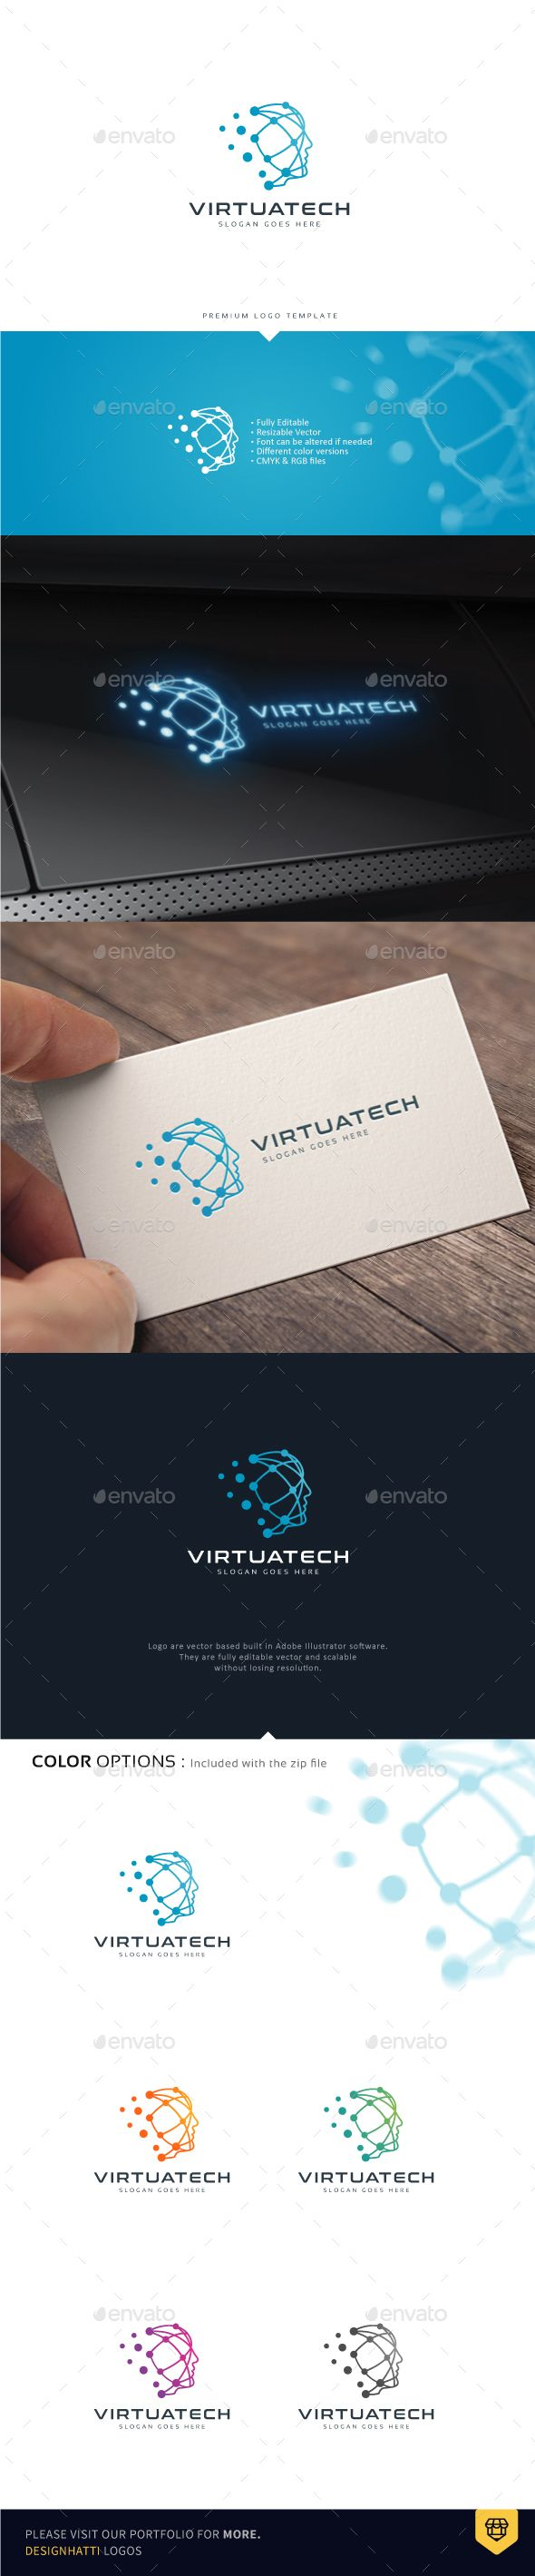 Human Head Virtual Technology Logo Template Vector EPS, AI Illustrator